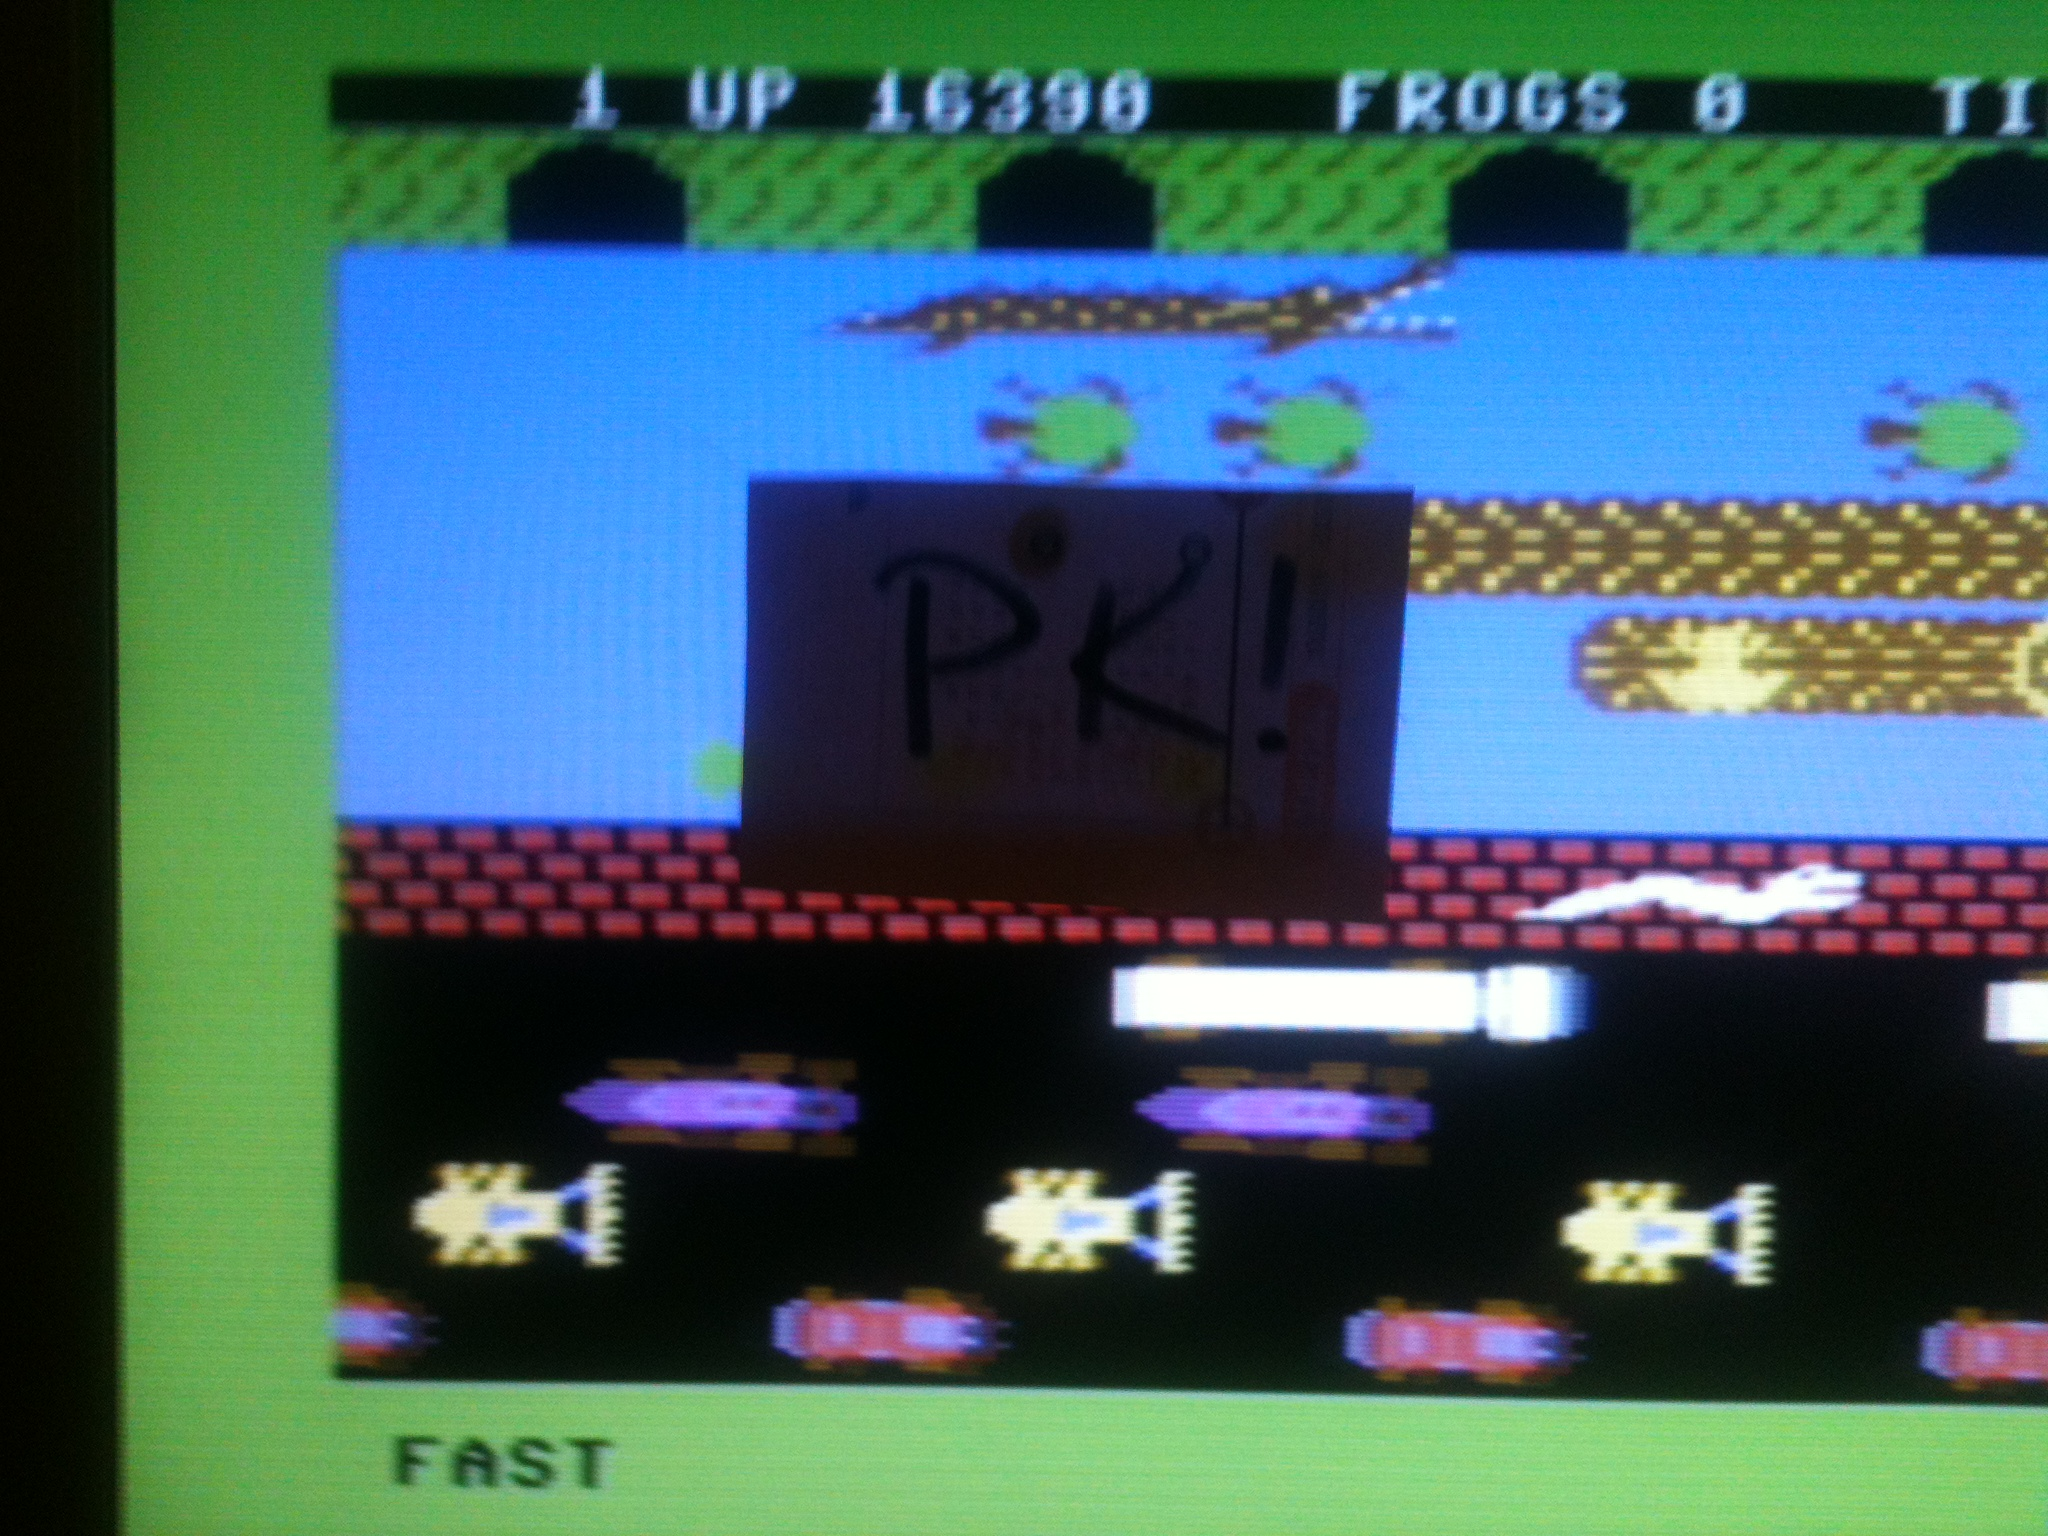 kernzy: Frogger: Parker Bros [Fast] (Commodore 64 Emulated) 16,390 points on 2015-11-19 17:42:08